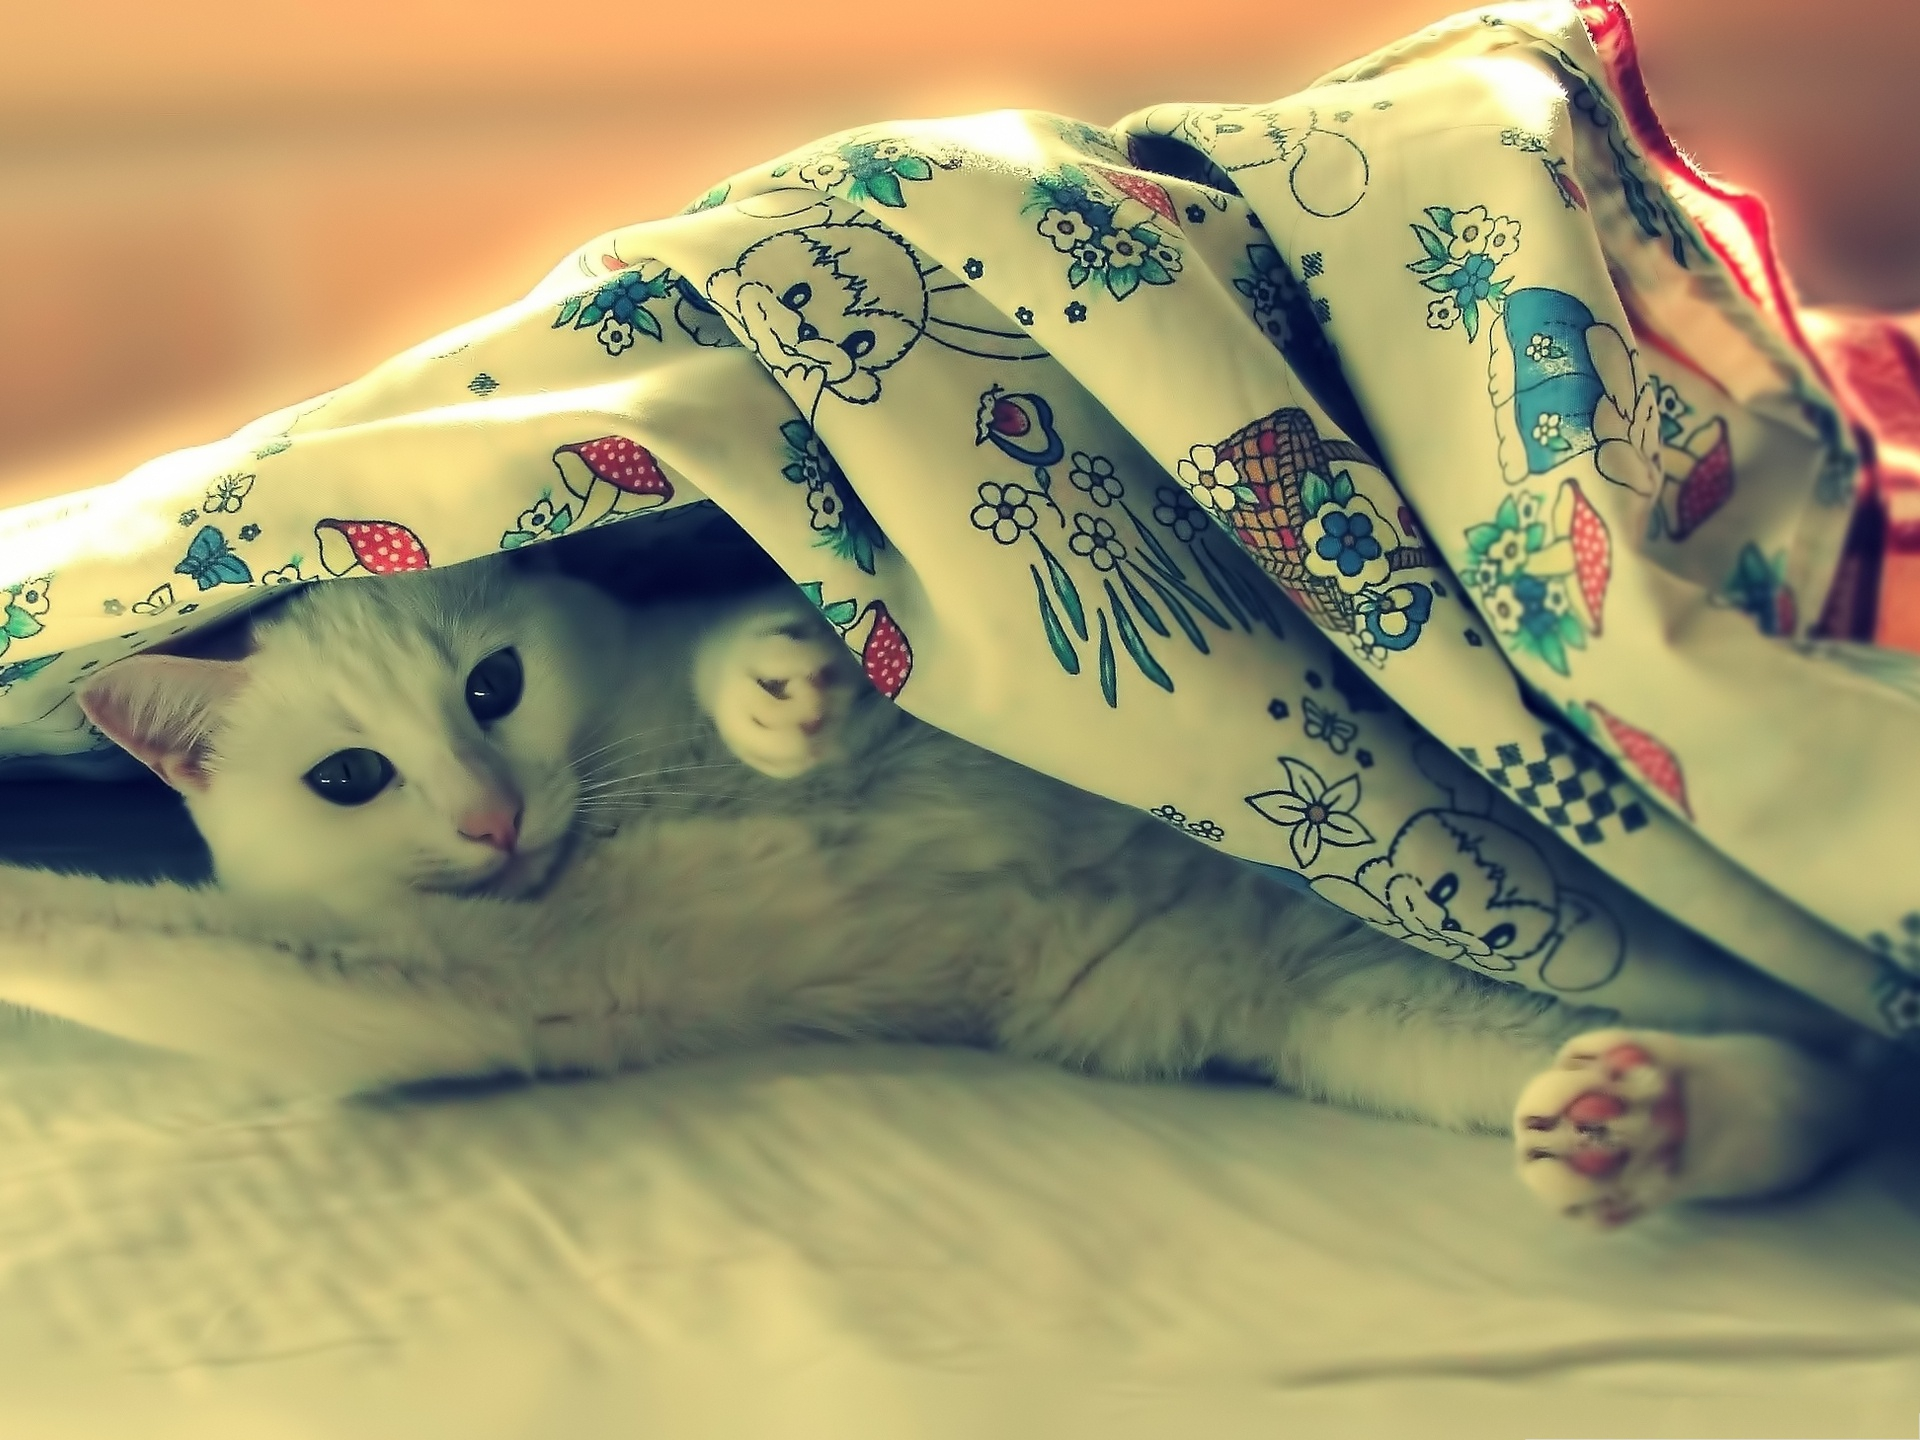 click to free download the wallpaper--Cute Cat Picture, Kitten Hiding Under a Blanket, Morning, Sweetie! 1920X1440 free wallpaper download